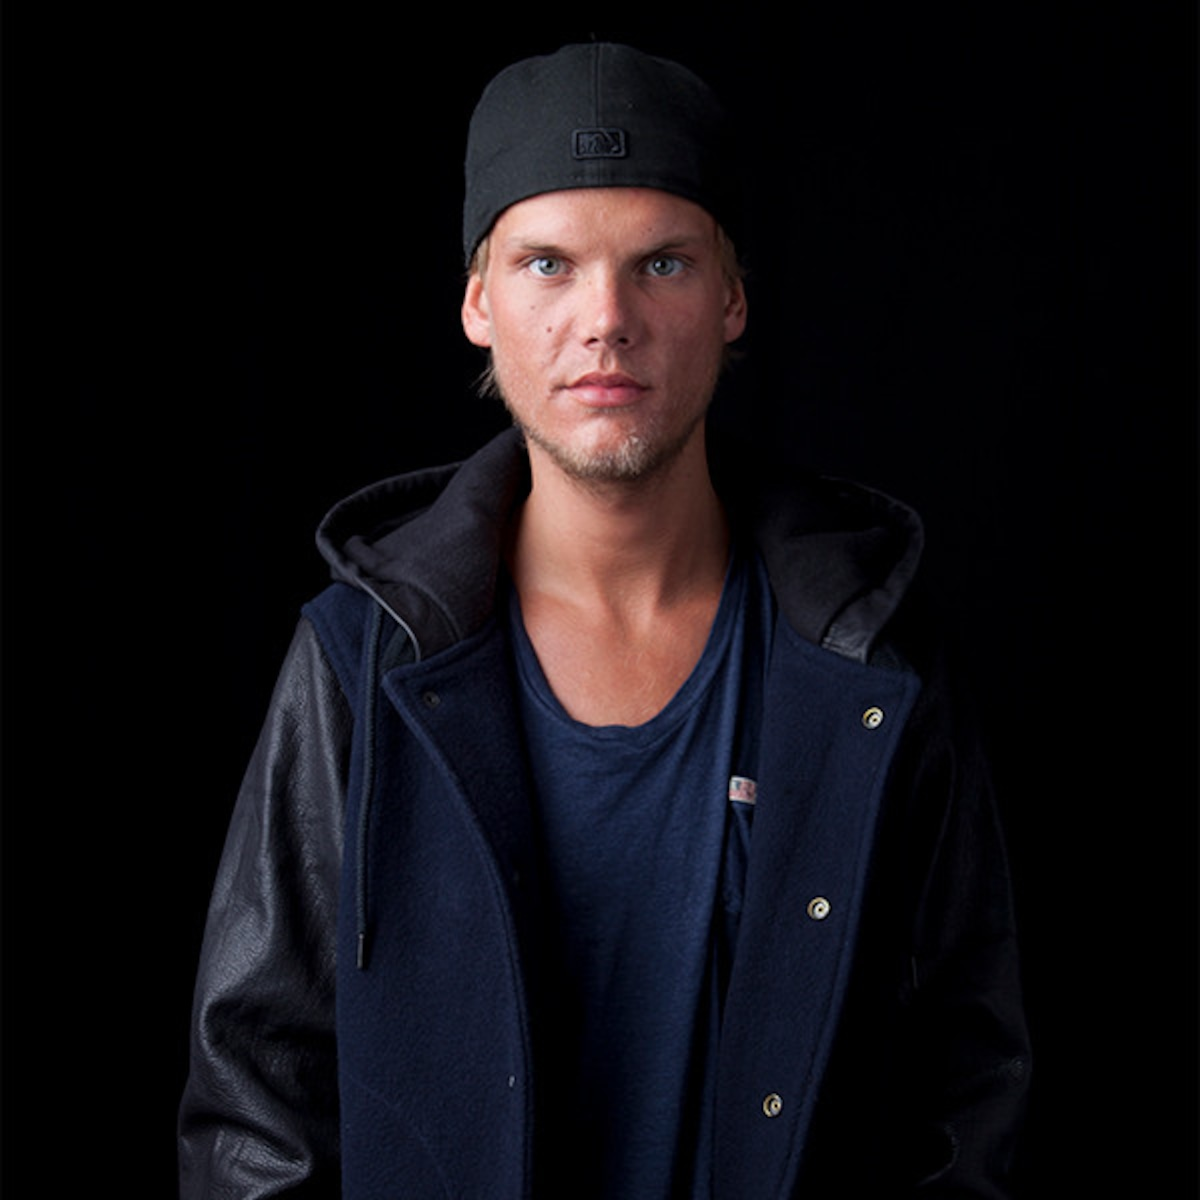 Inside the Pain That Plagued Avicii